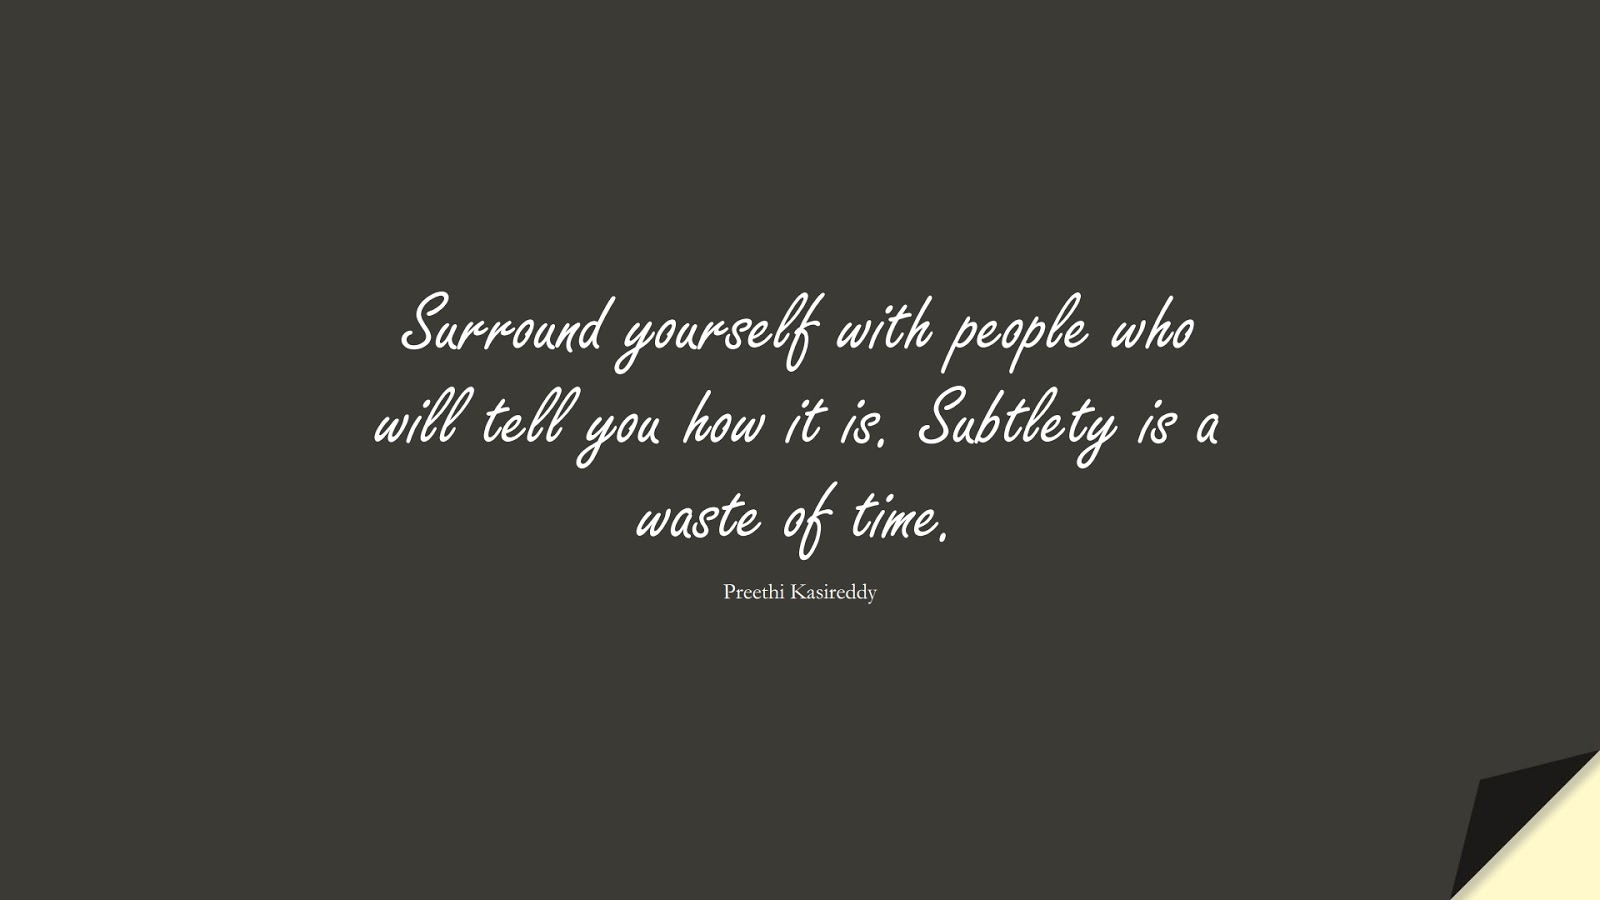 Surround yourself with people who will tell you how it is. Subtlety is a waste of time. (Preethi Kasireddy);  #RelationshipQuotes